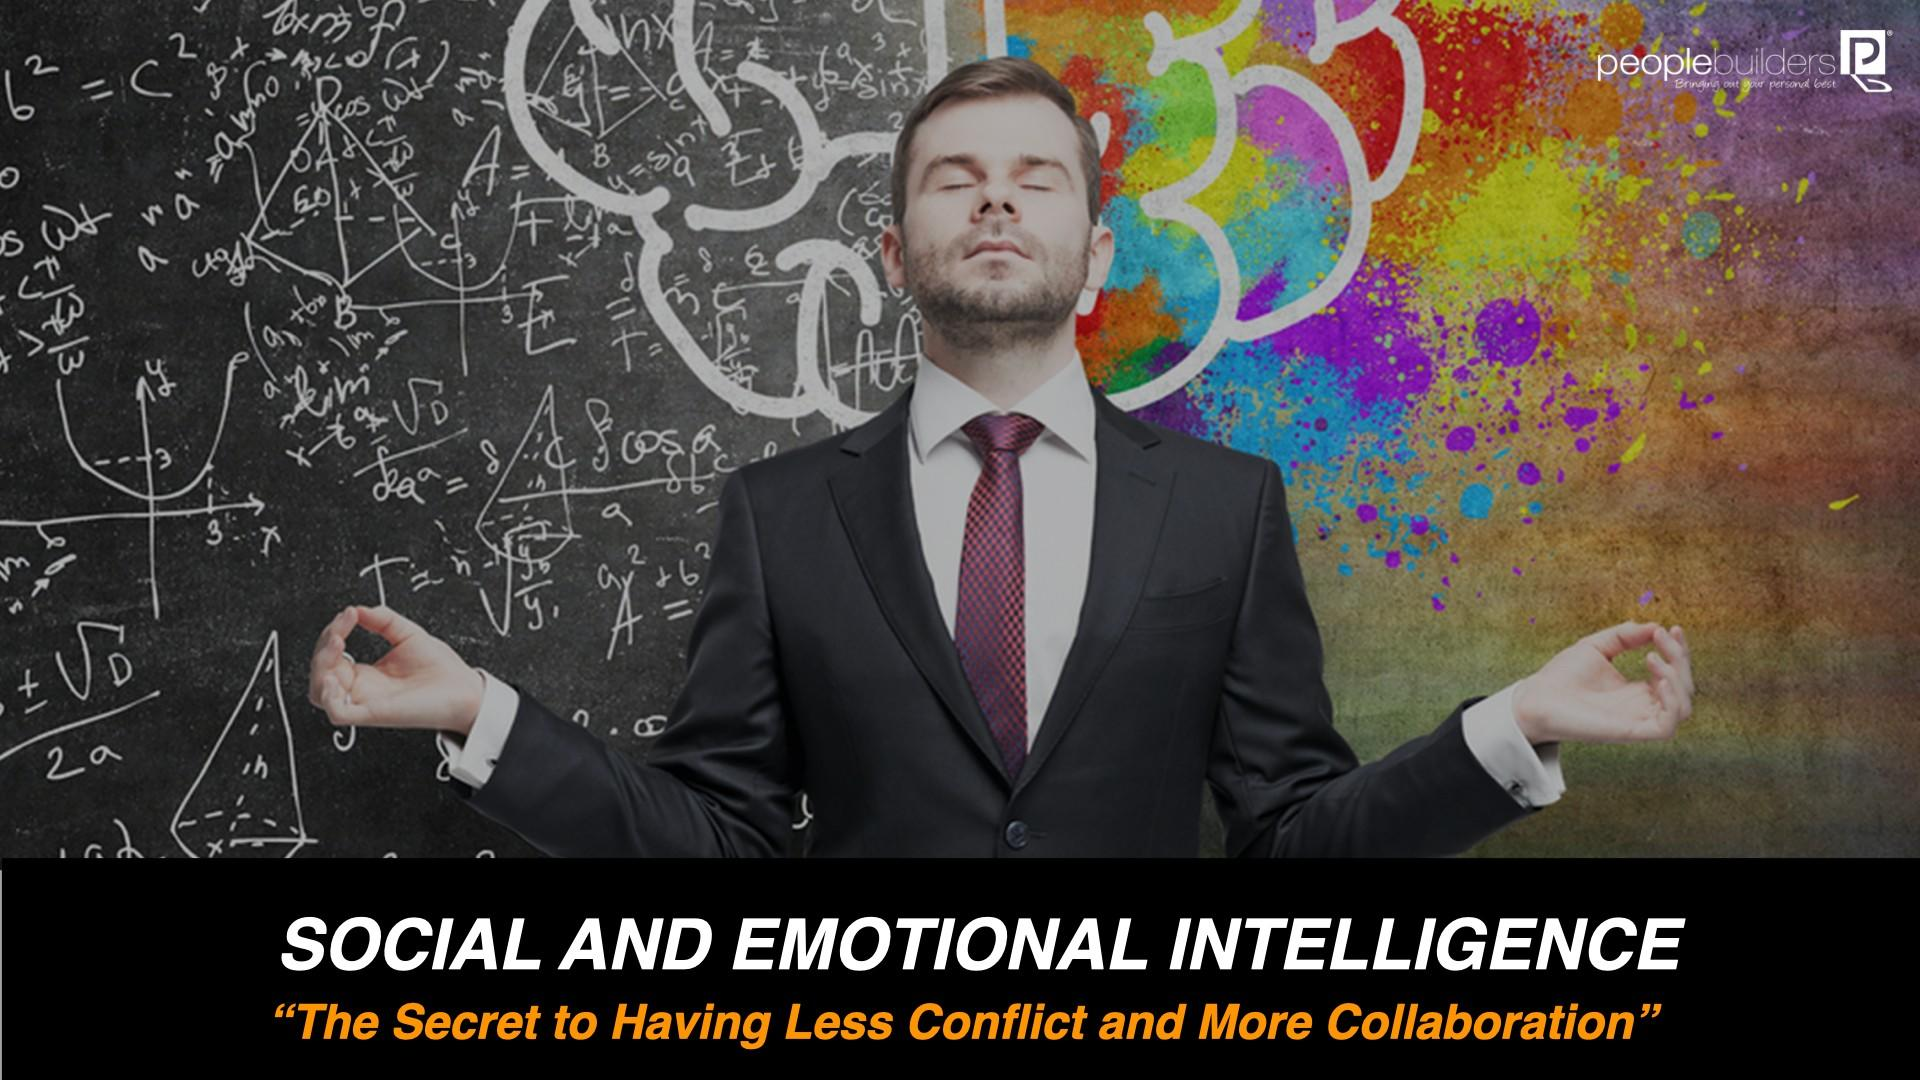 Emotional Intelligence ebook cover showing Man doing a meditation pose. The title of ebook is the secret to having less conflict and more collaboration.